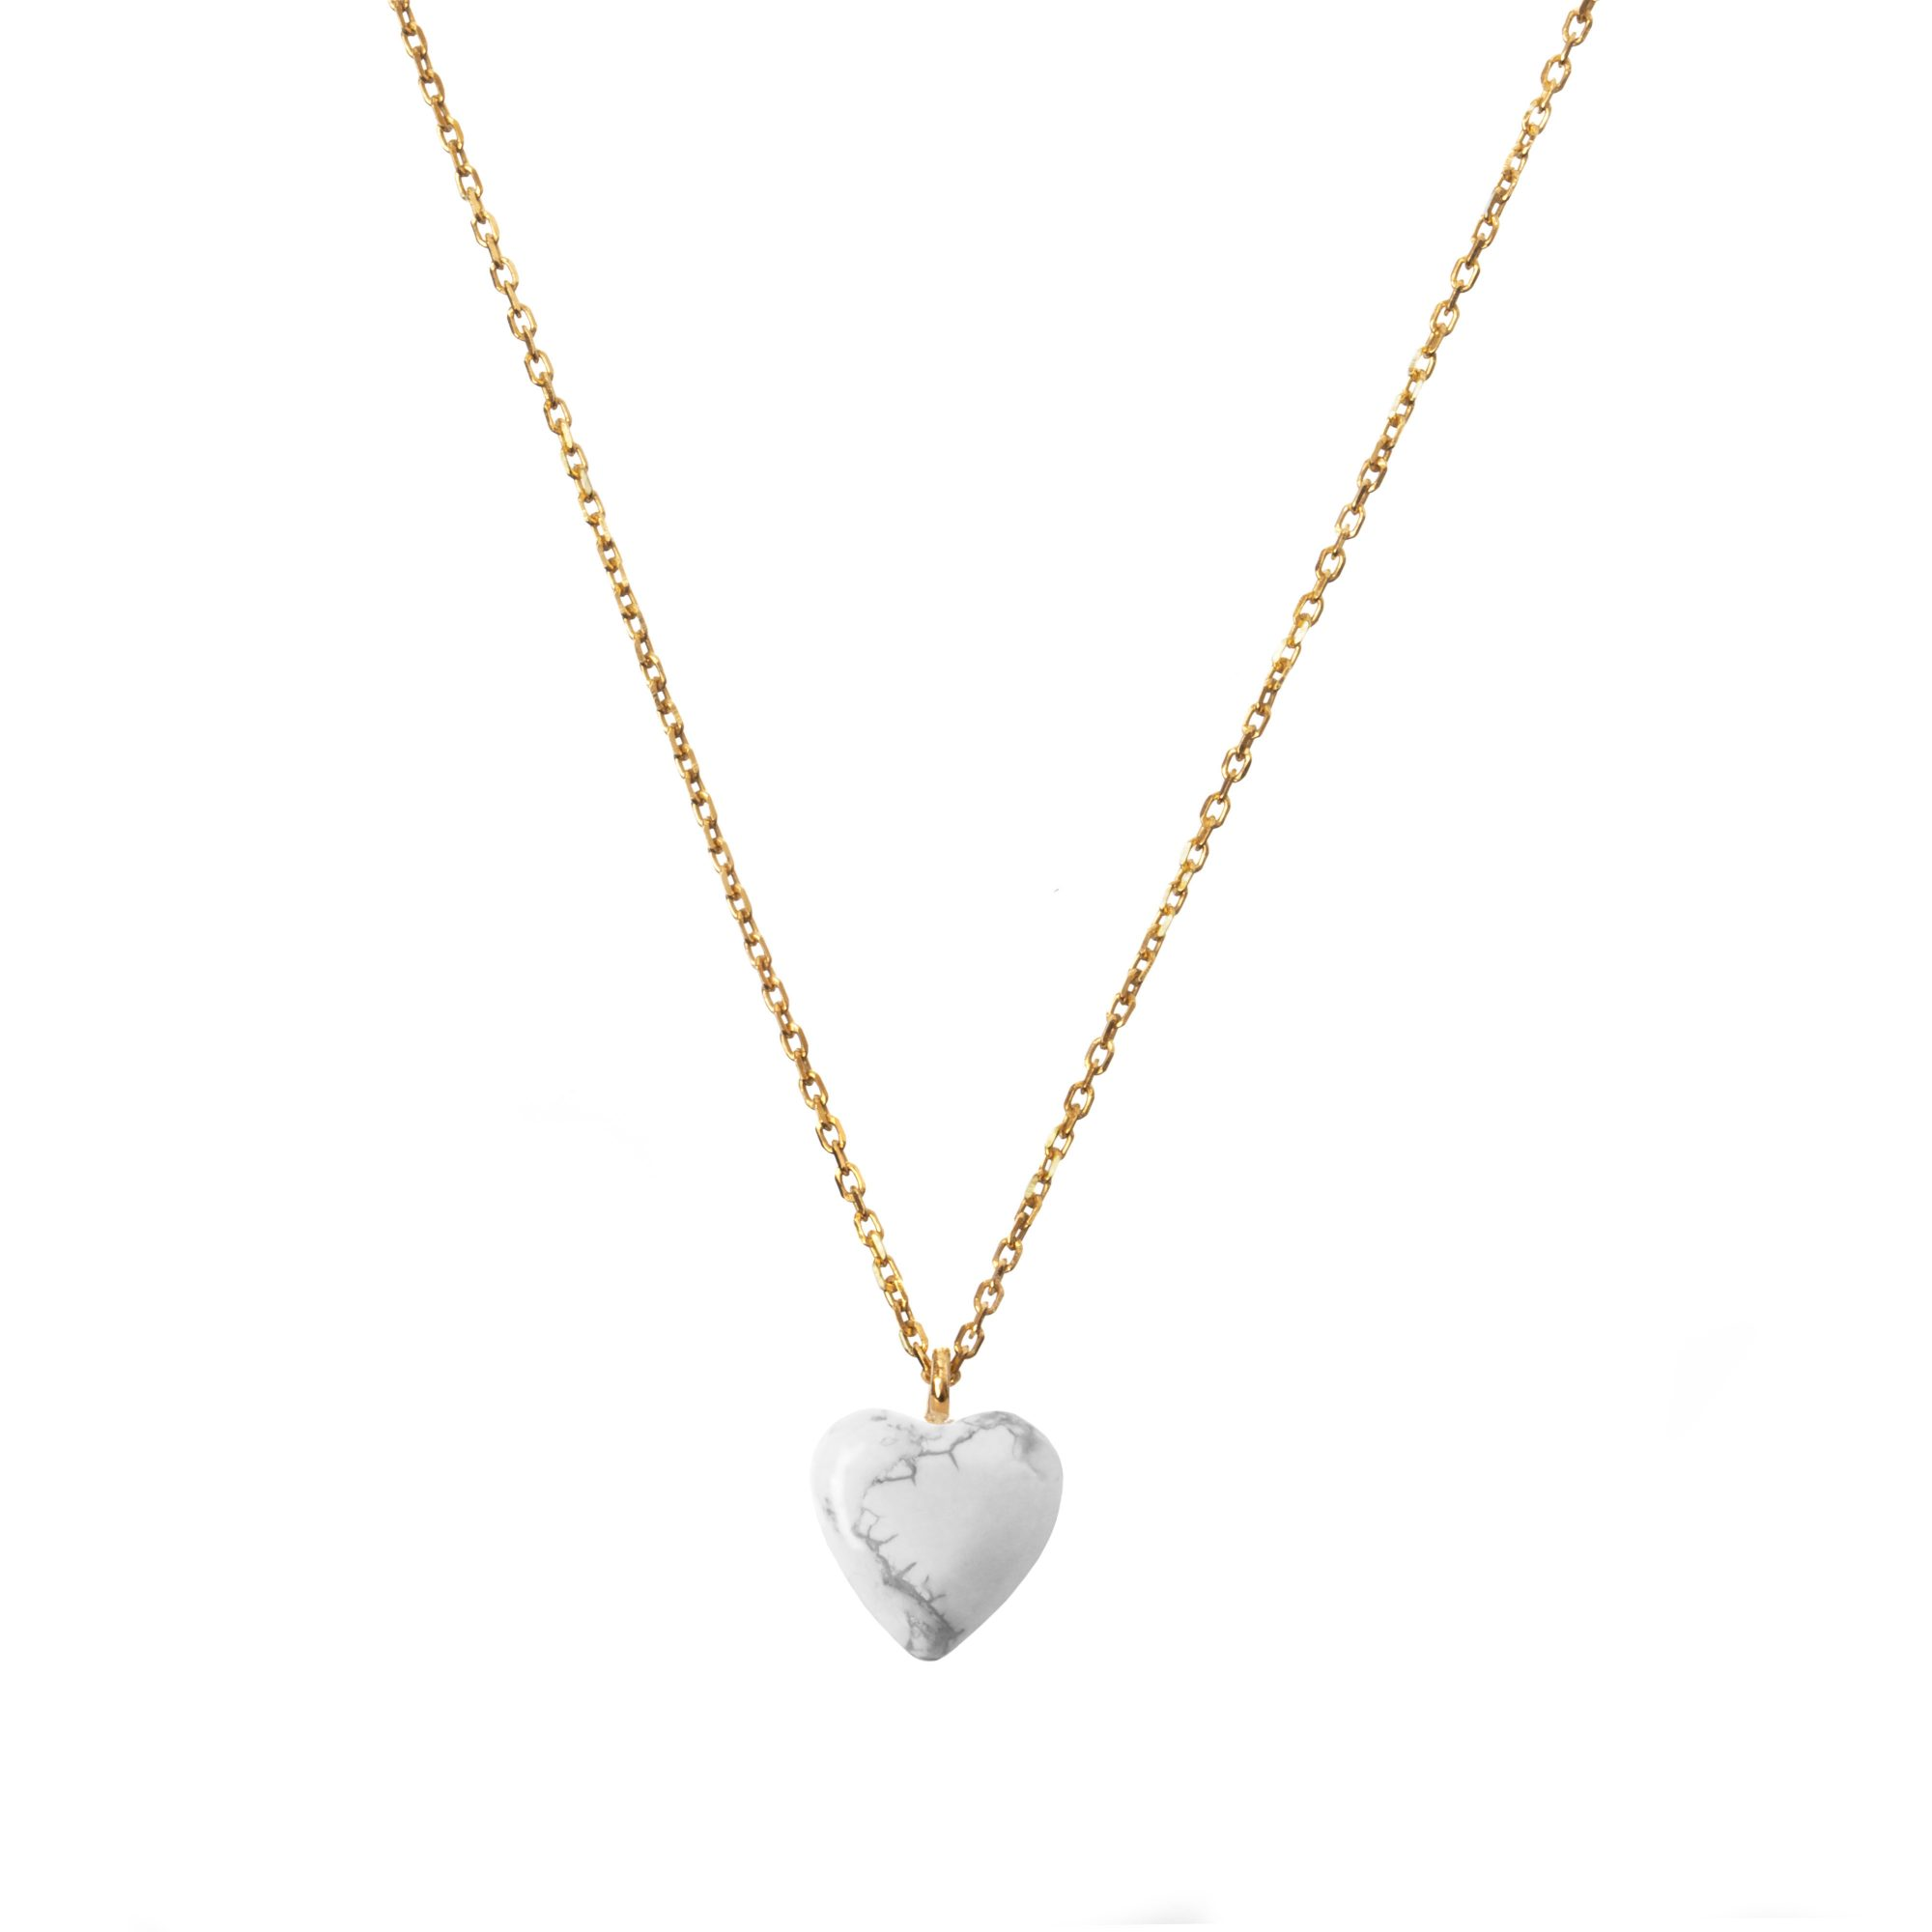 metaformi_design_jewelry_guilty_pleasures_howlite_heart_necklace.jpg